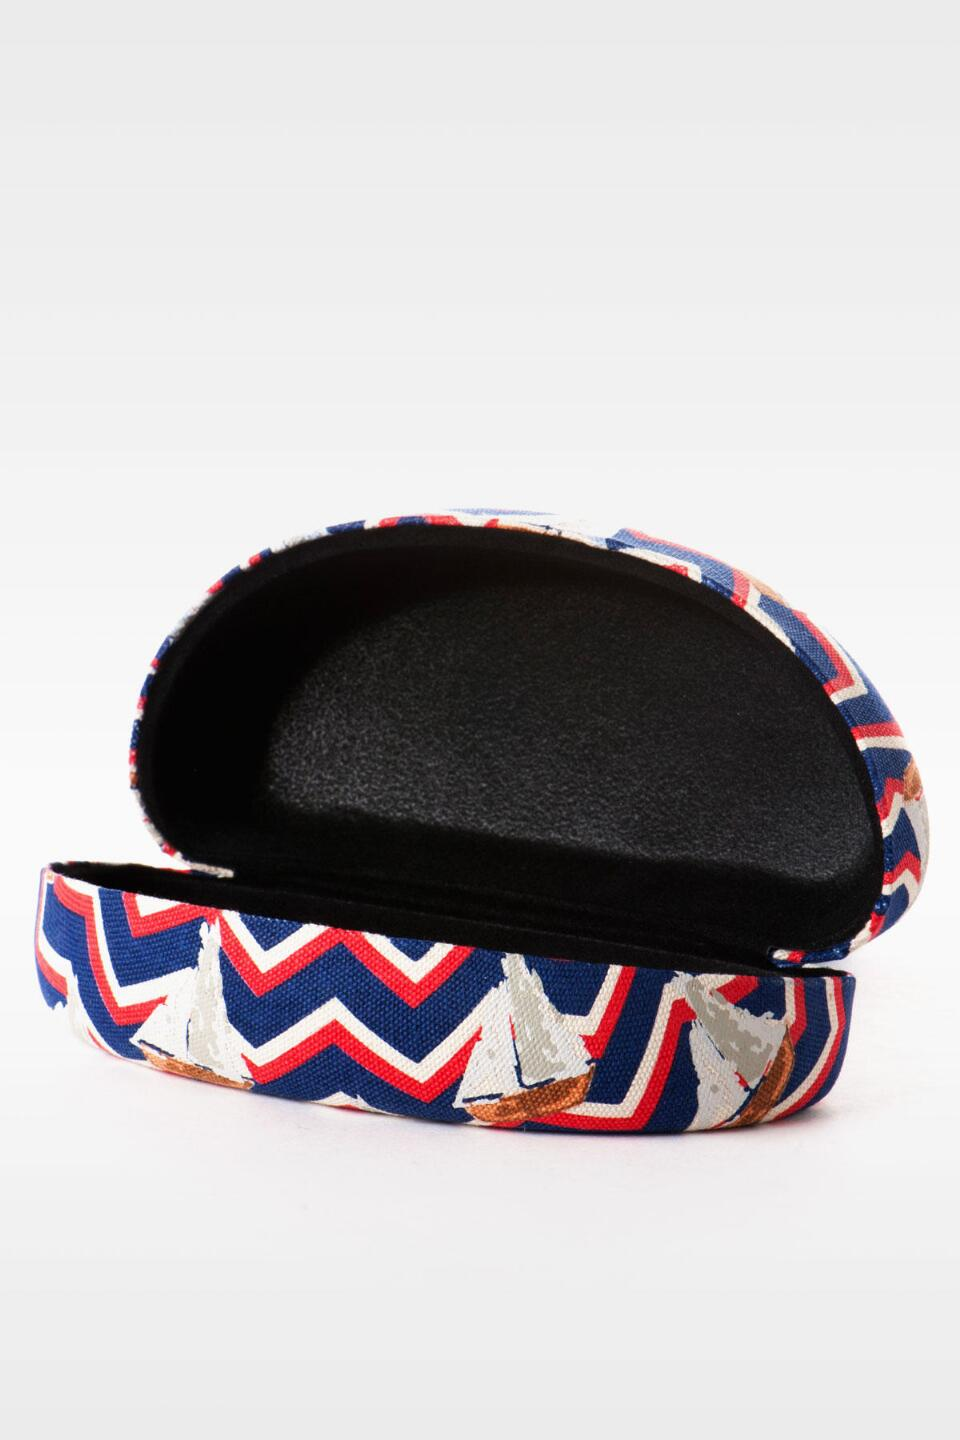 Sailboat Sunglasses Case-  navy-clalternate